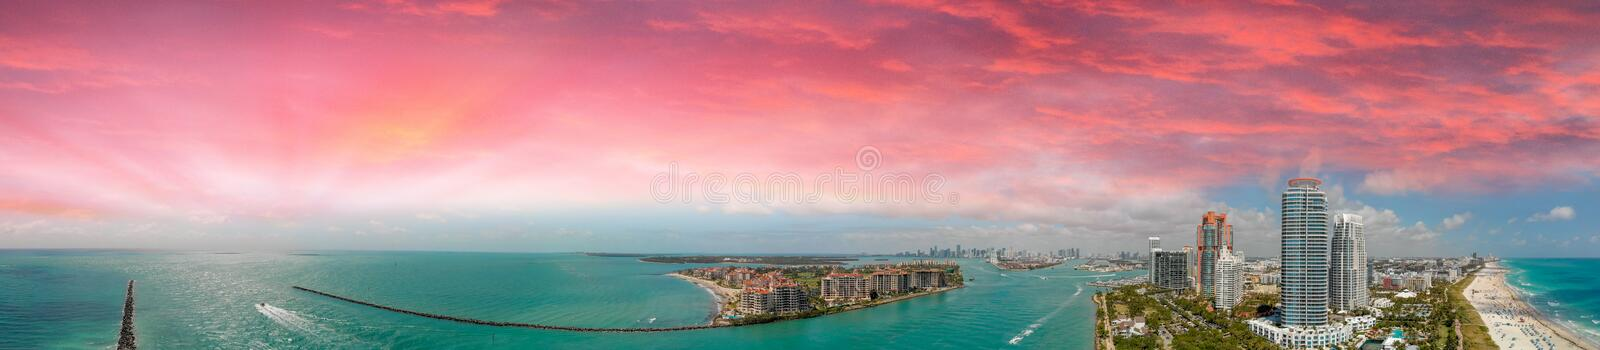 Amazing aerial view of Miami Beach and coastline at sunset, Florida stock image